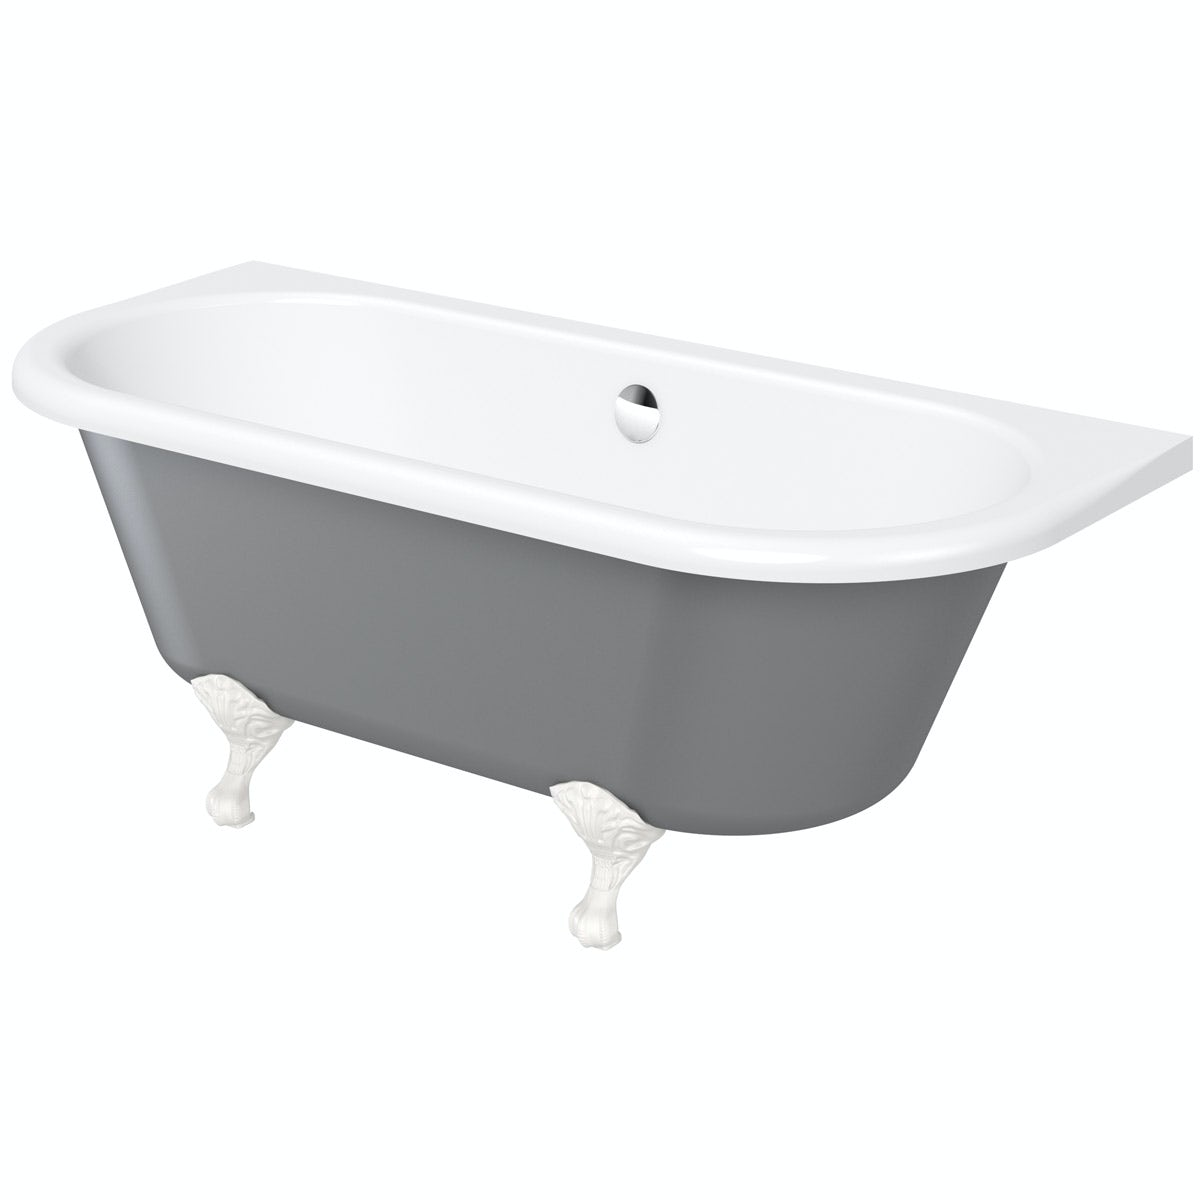 The Bath Co Dulwich Grey Back To Wall Roll Top Bath With